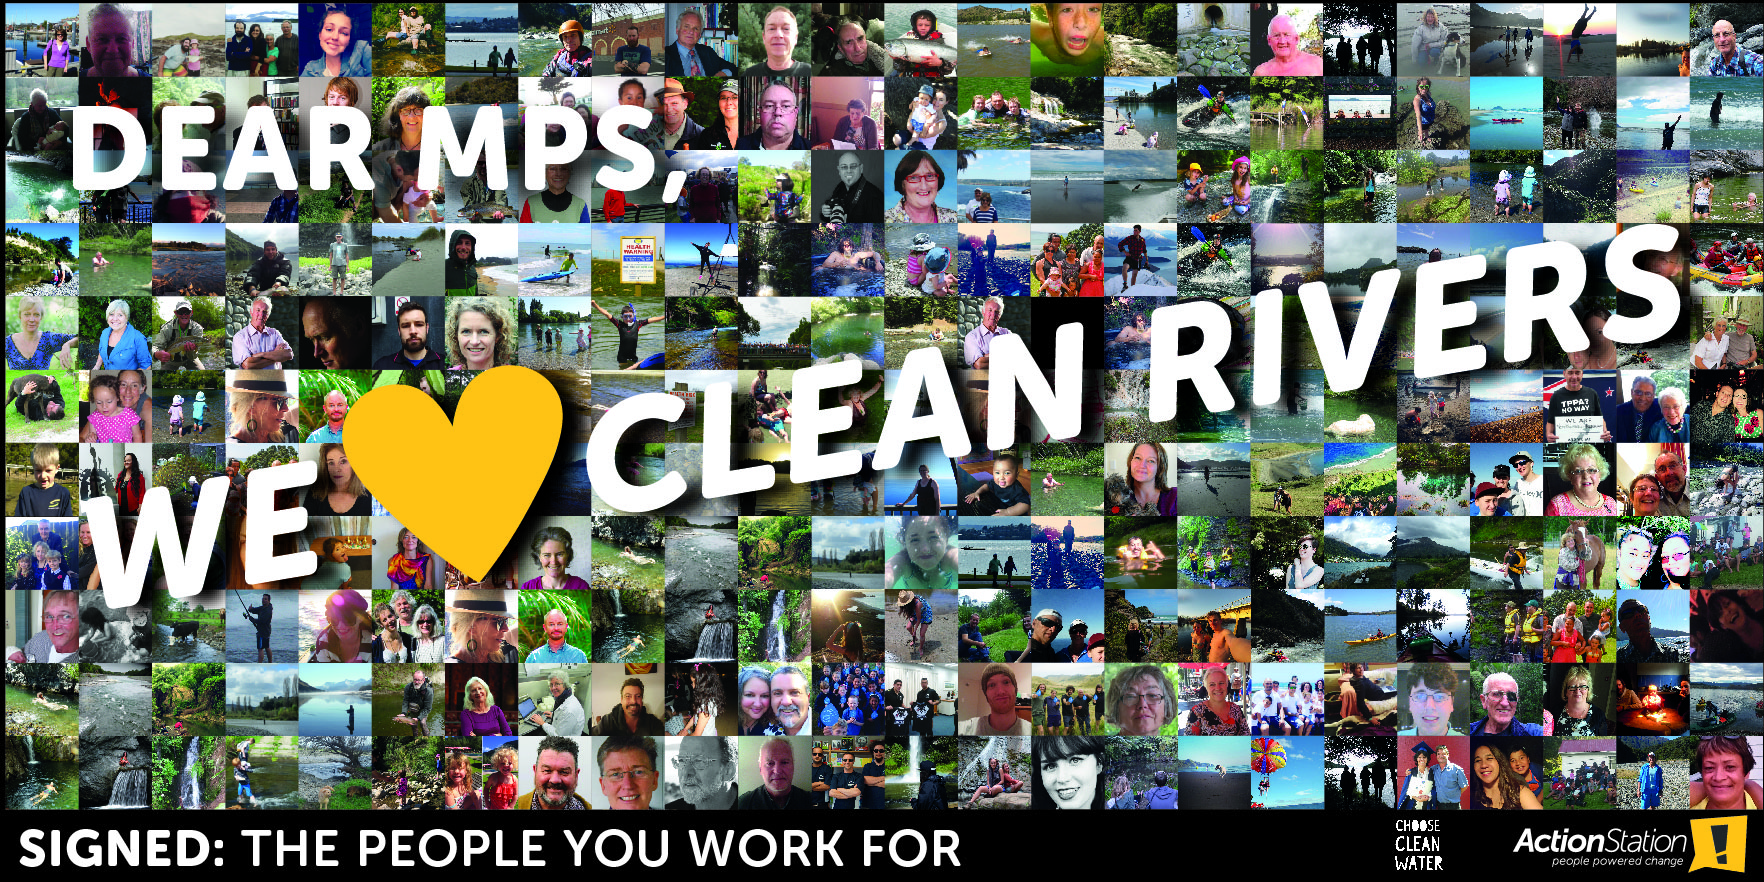 ActionStation billboard featuring crowdsourced photos of hundreds of New Zealanders enjoying their lakes, rivers and streams in a collage. It says \